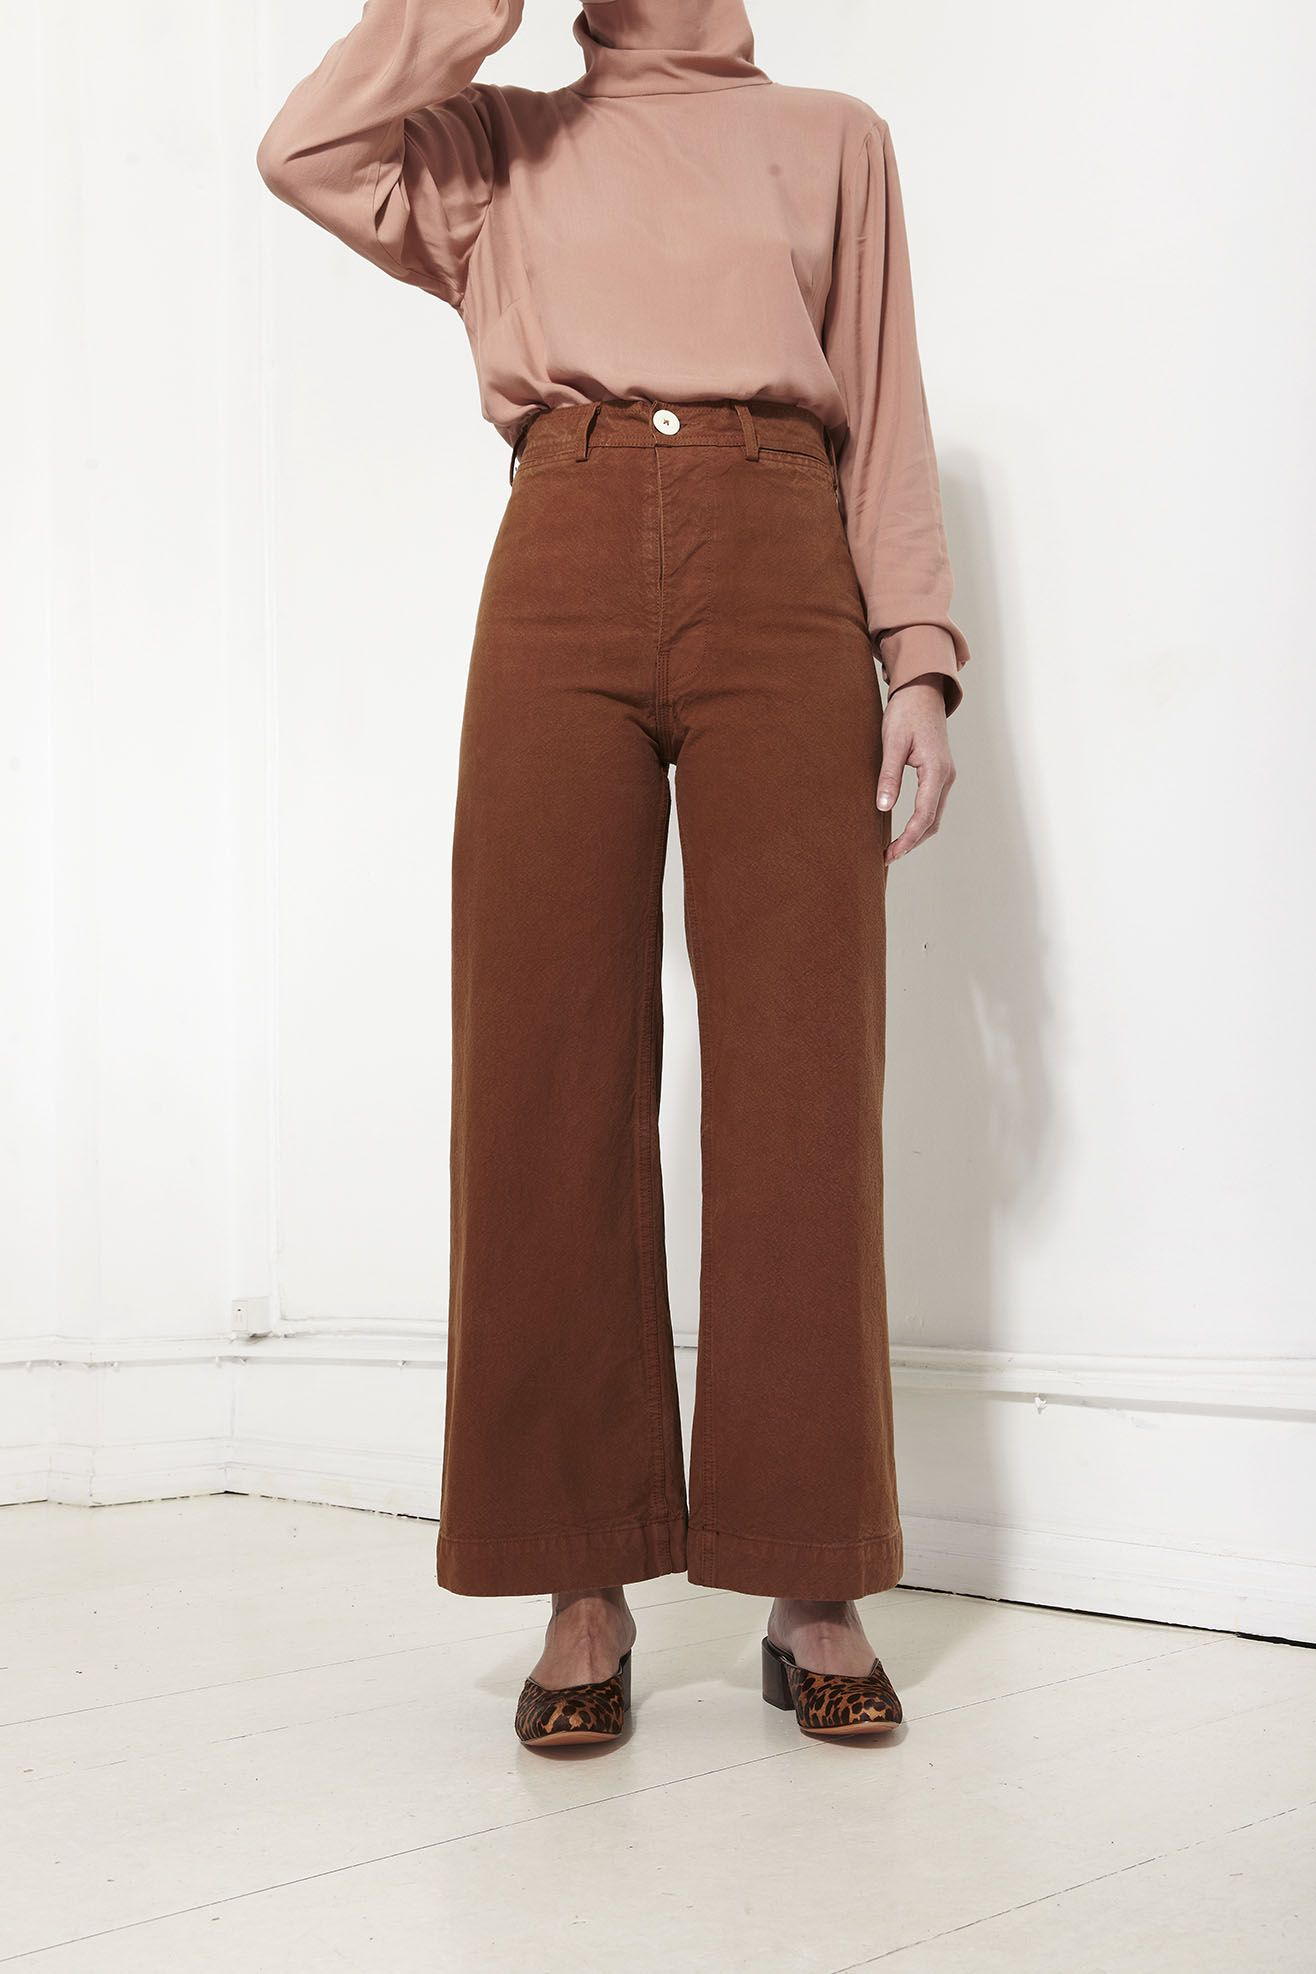 favorable price marketable numerousinvariety JESSE KAMM, Dusty rose draped turtleneck and rust brown high ...